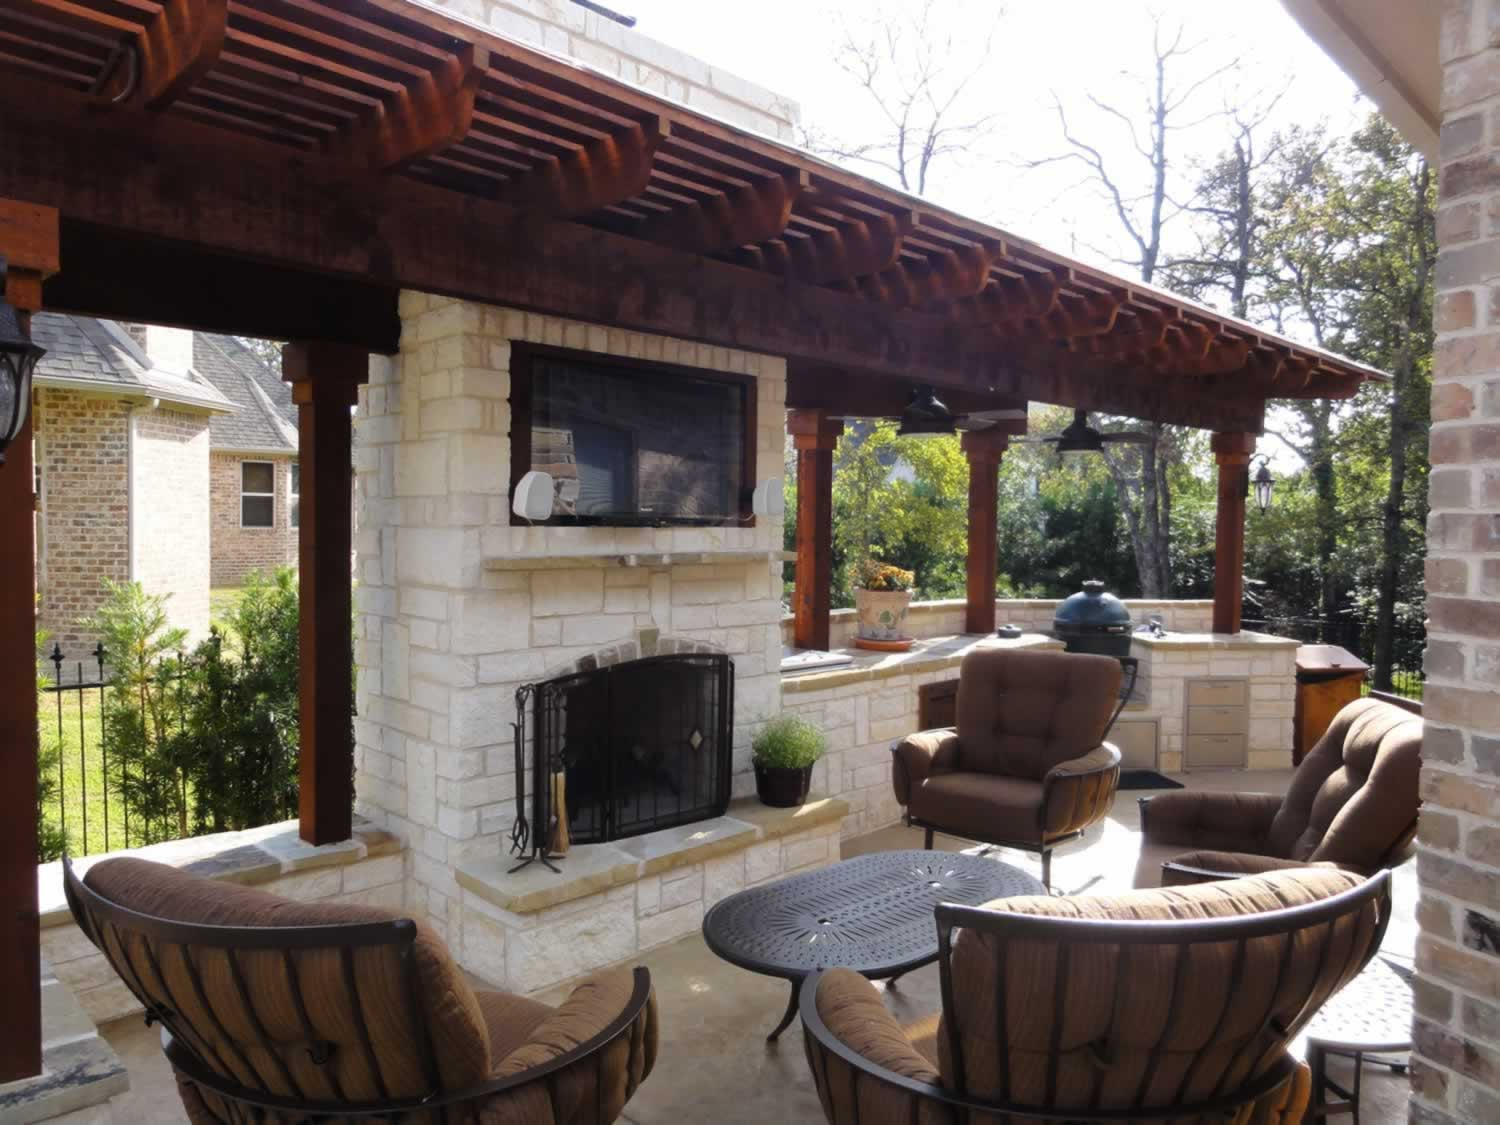 Landscape by Design | Landscape Contractor in North Texas on Outdoor Kitchen And Fireplace Ideas id=90905